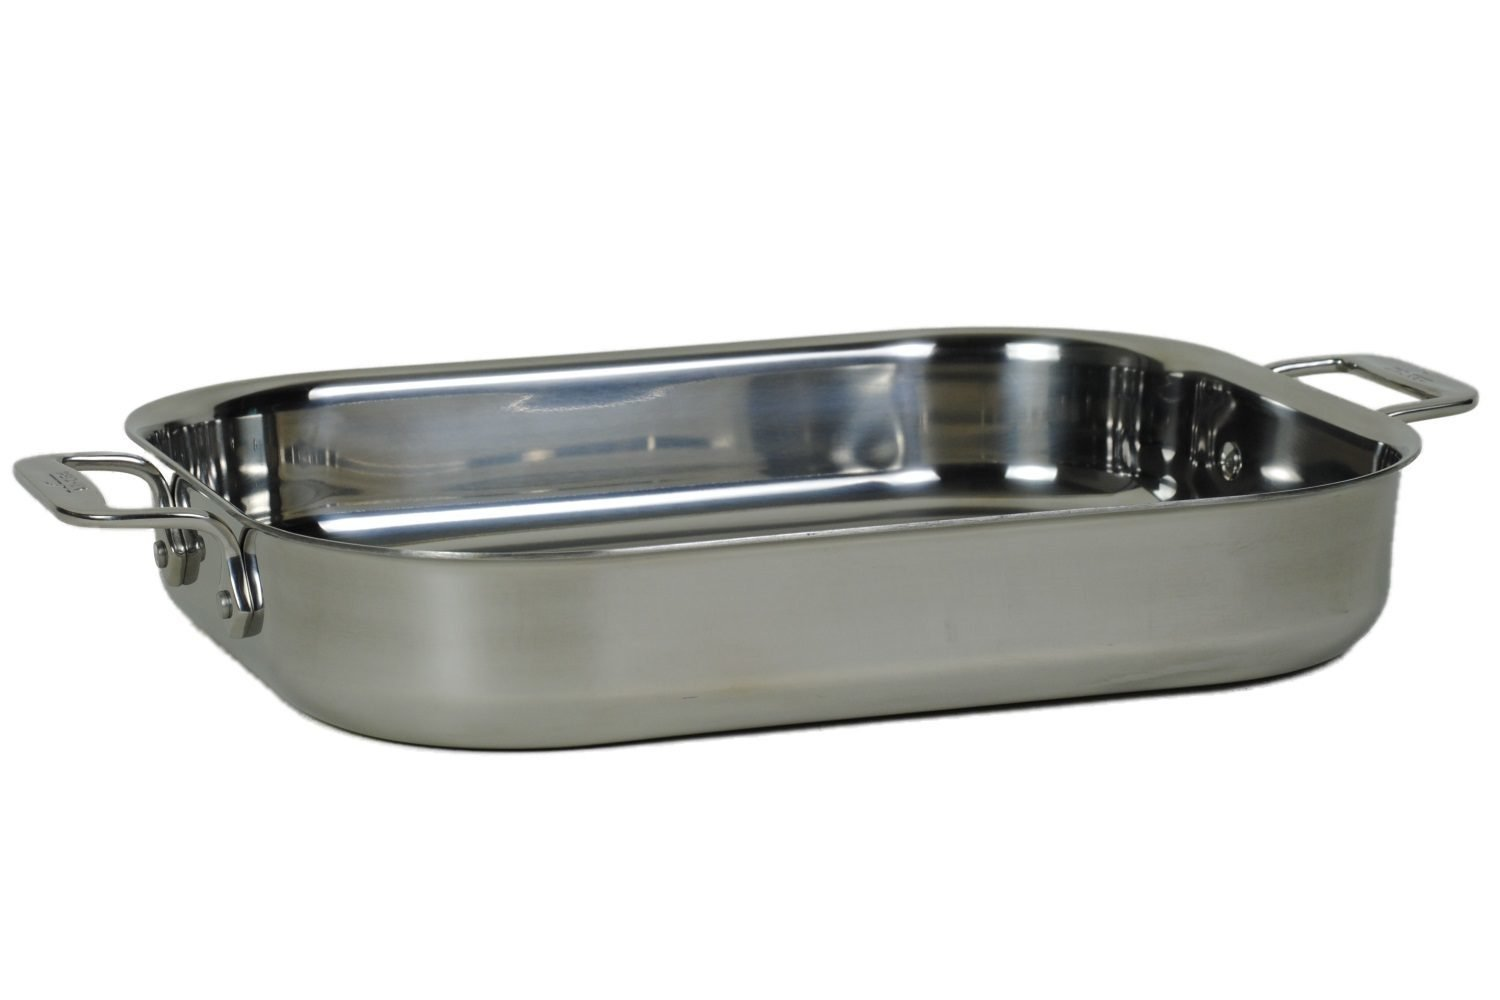 All-Clad 00830 Stainless-Steel Lasagna Pan with 2 Oven Mitts/ Cookware, Silver by All-Clad B017DM067Y